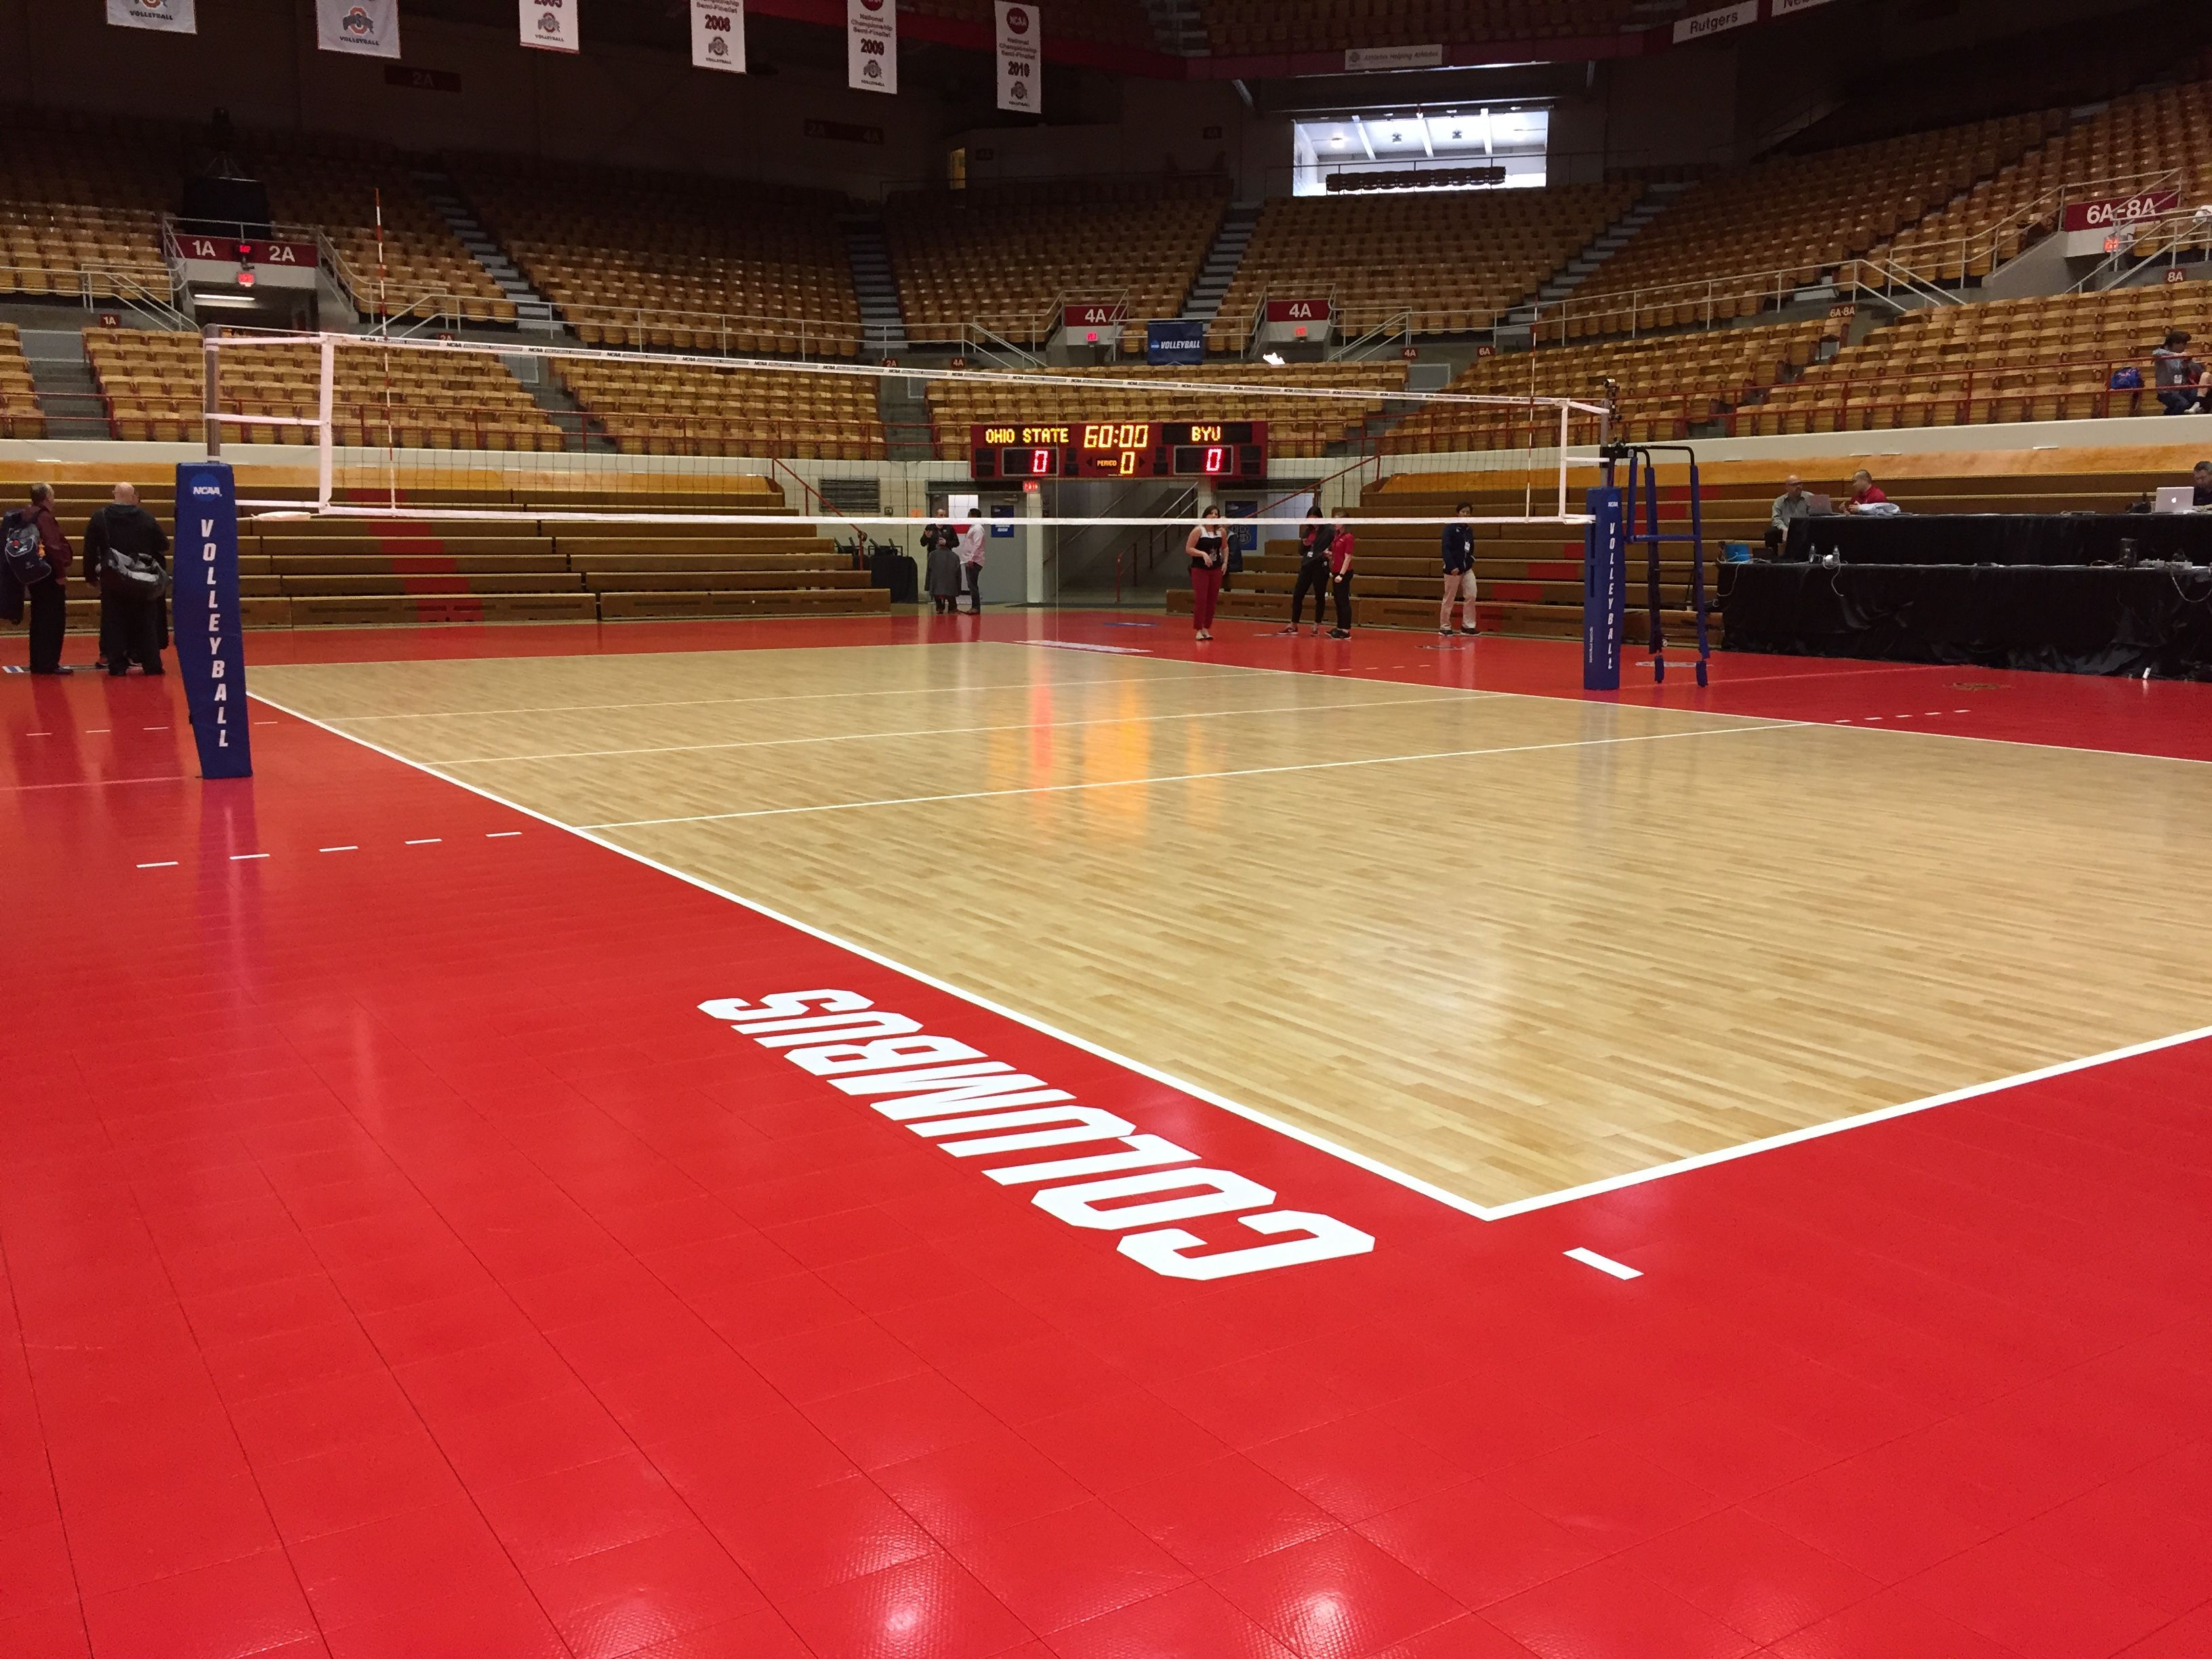 Volleyball Net System 2017 Ncaa Men S Volleyball Championship Court Volleyball Net Indoor Volleyball Volleyball